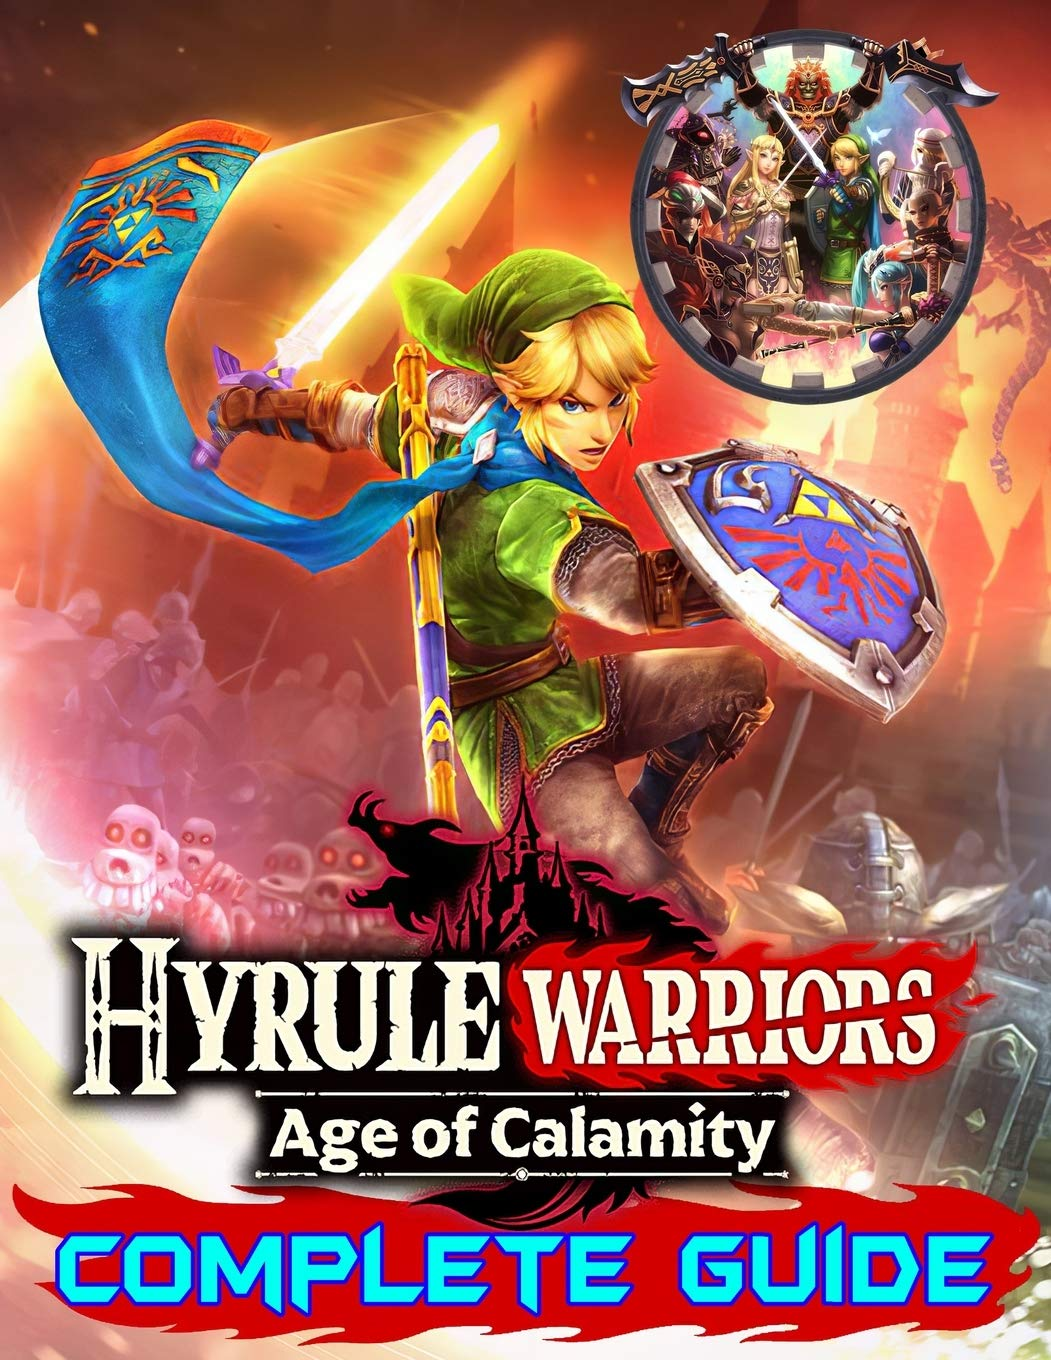 Hyrule Warriors Age Of Calamity Complete Guide Become A Pro Player In Hyrule Warriors Best Tips Tricks Walkthroughs And Strategies Butler Samuel 9798584659295 Amazon Com Books